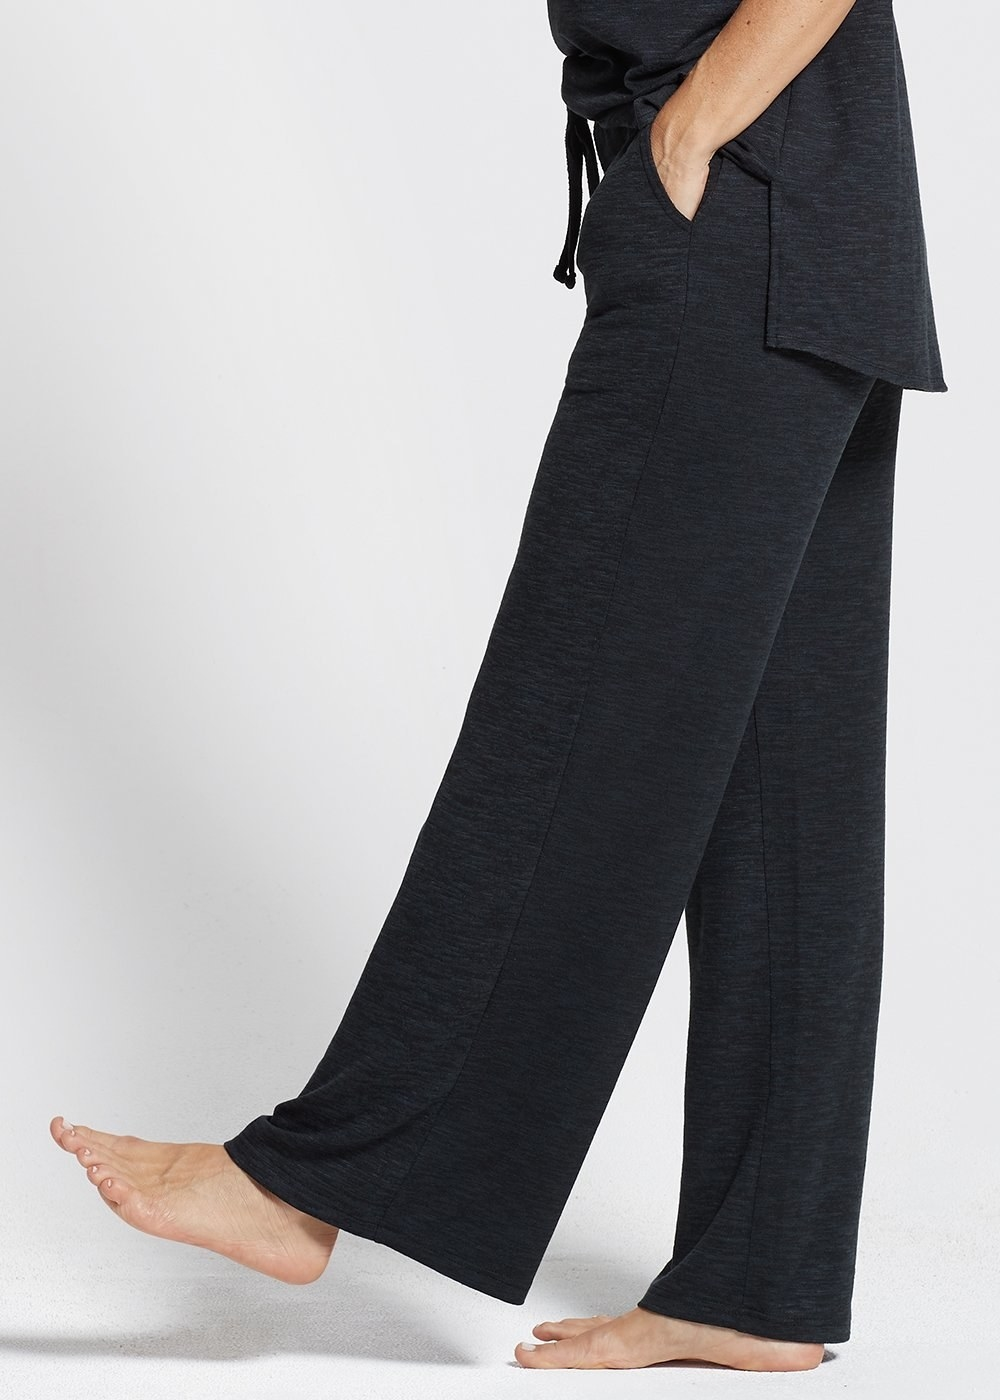 A model wearing the pants in Black Marl